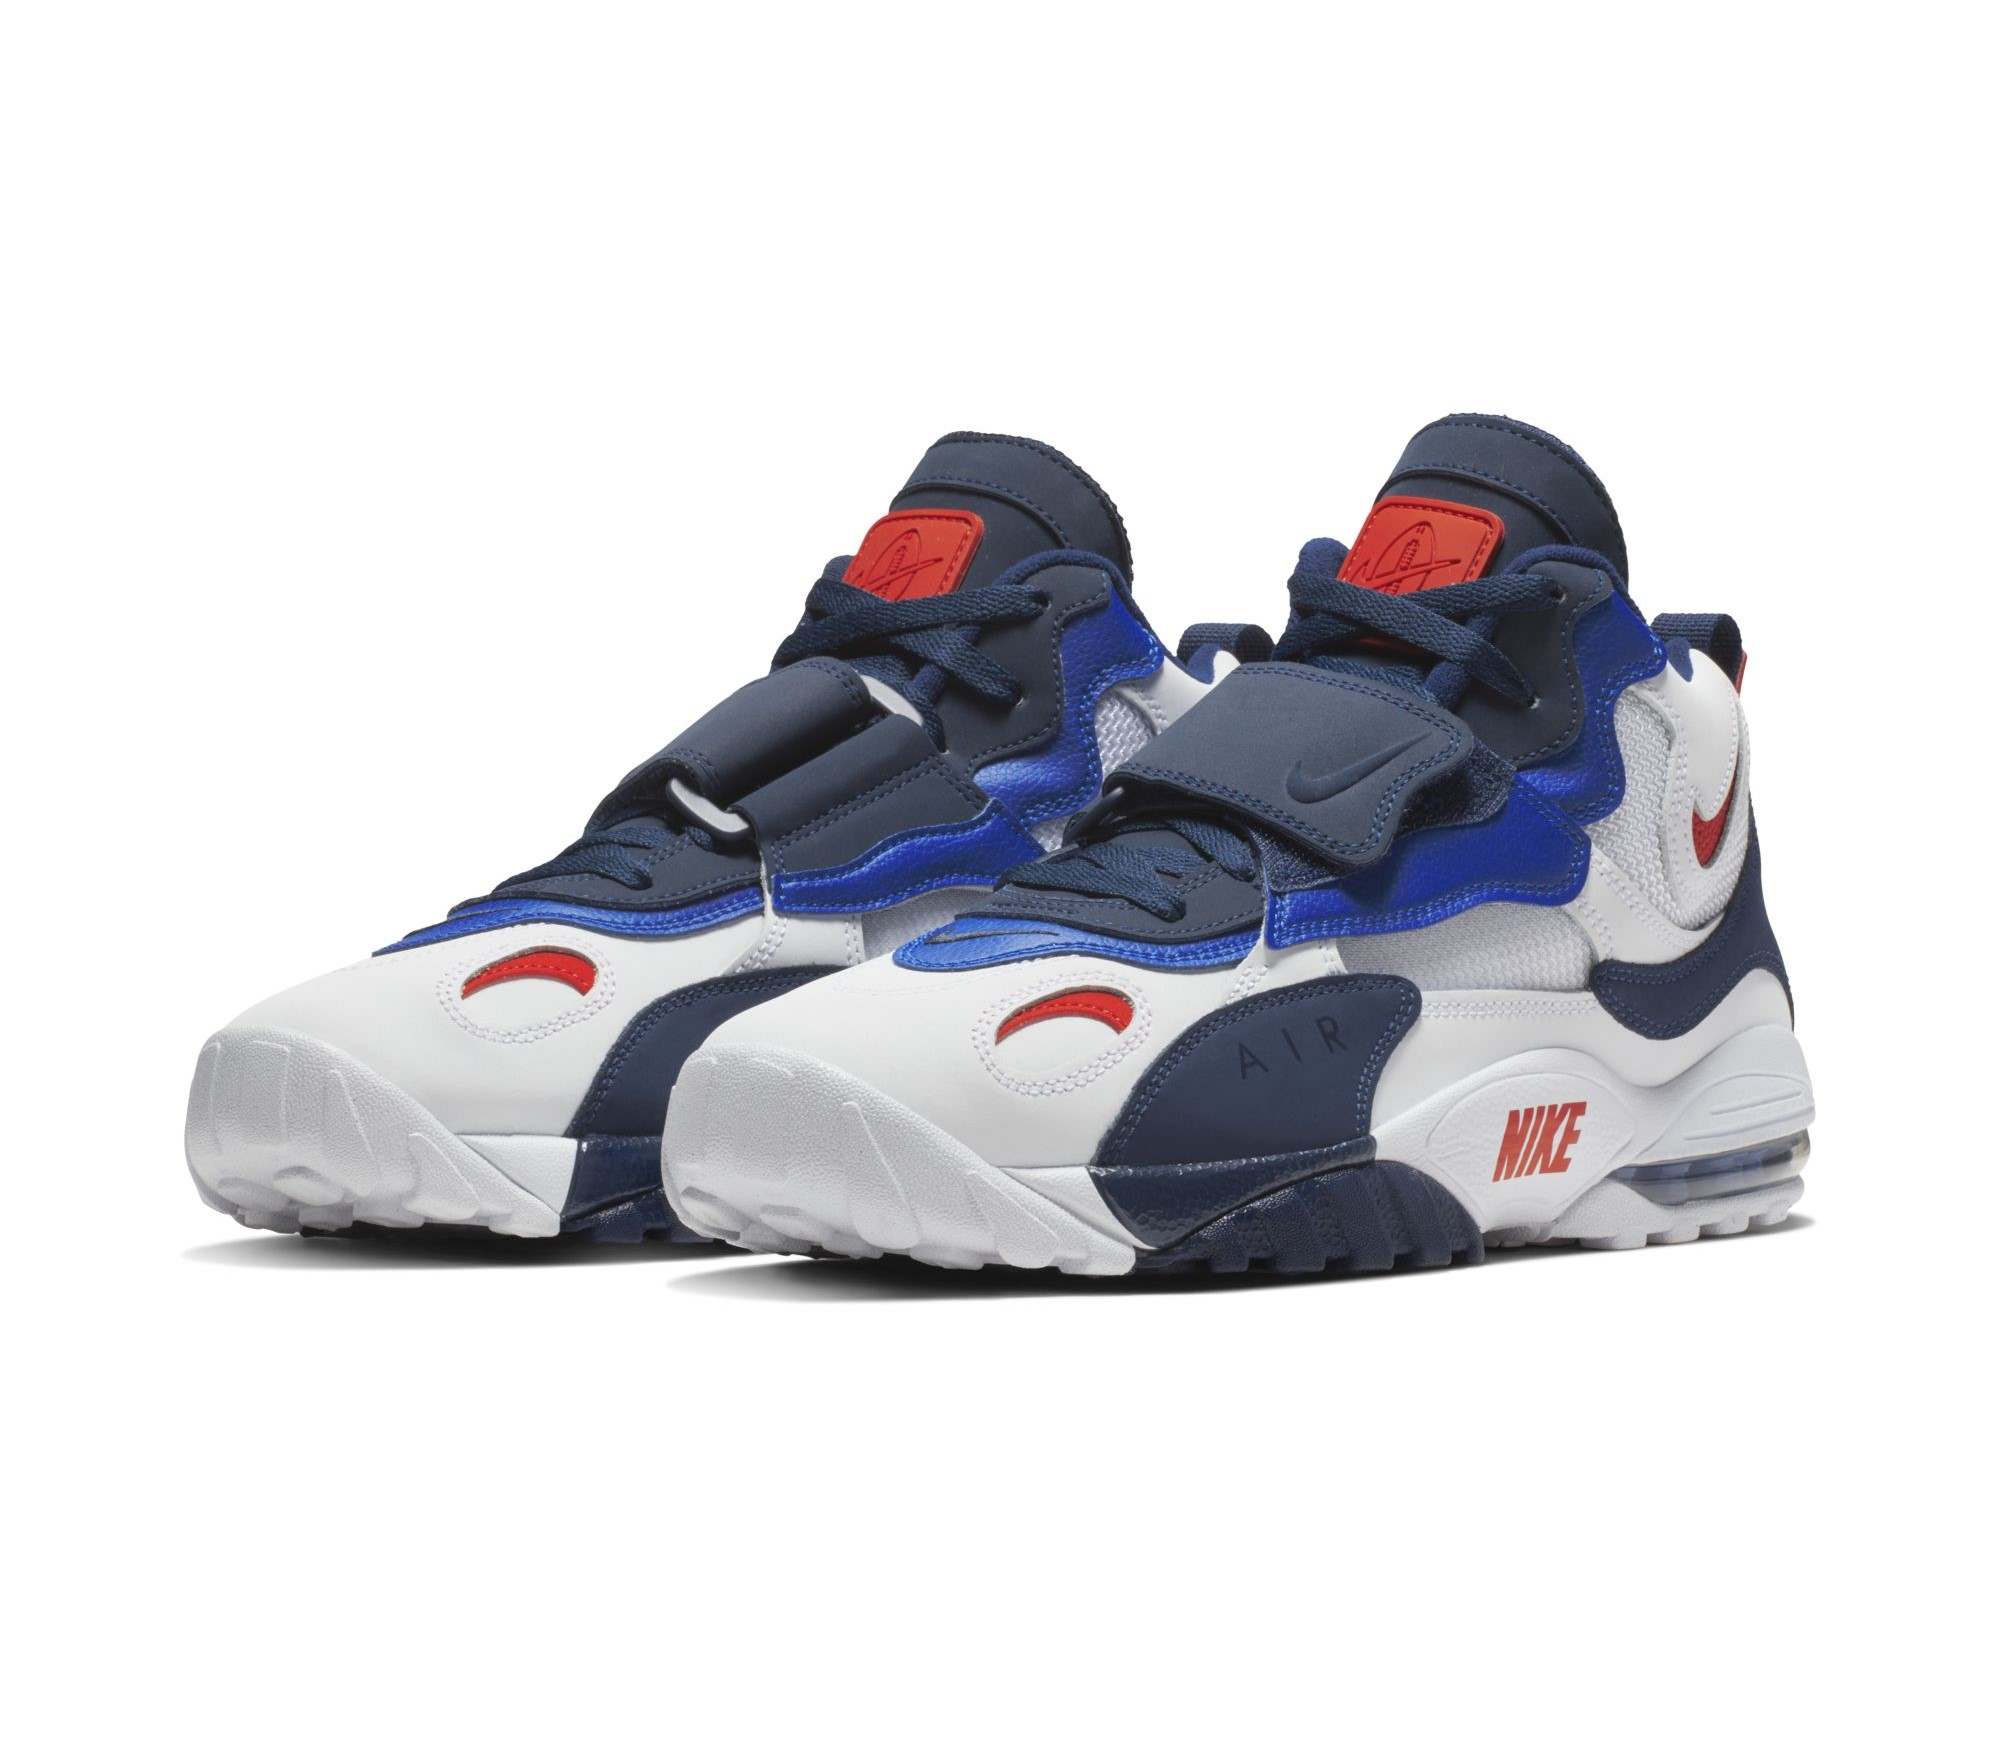 new style 39e56 0f1db The Nike Air Max Speed Turf Has Arrived in Bold New Looks ...